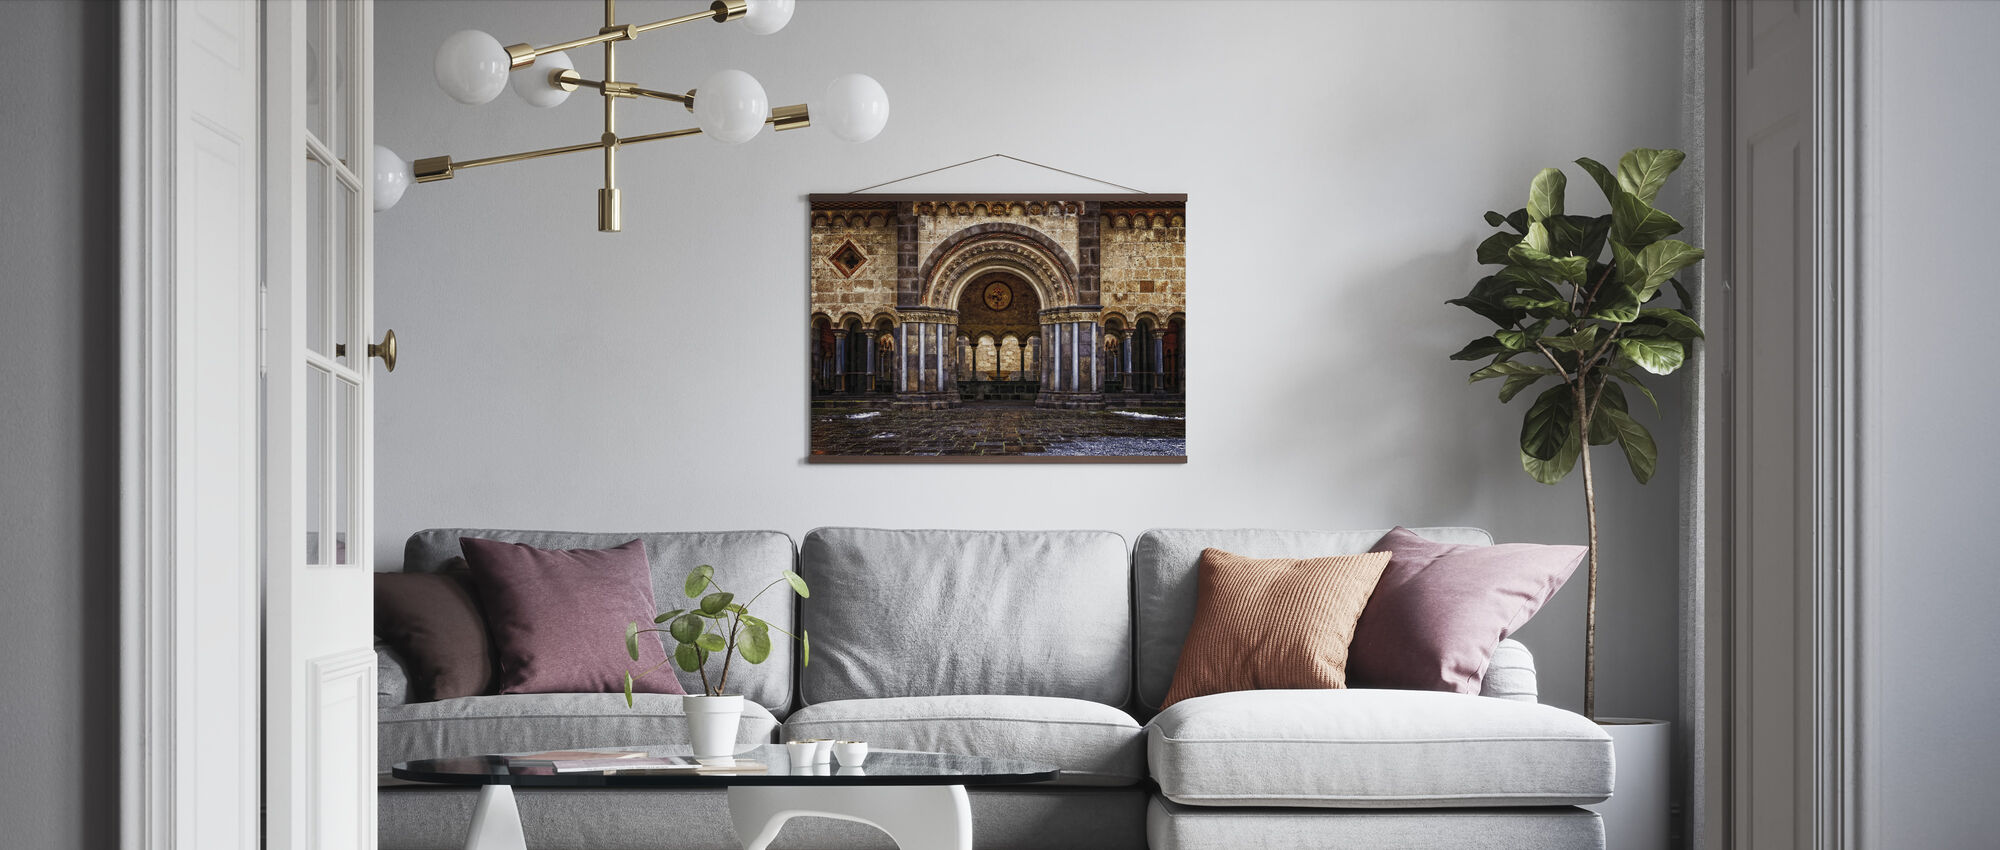 Monastery Archway - Poster - Living Room